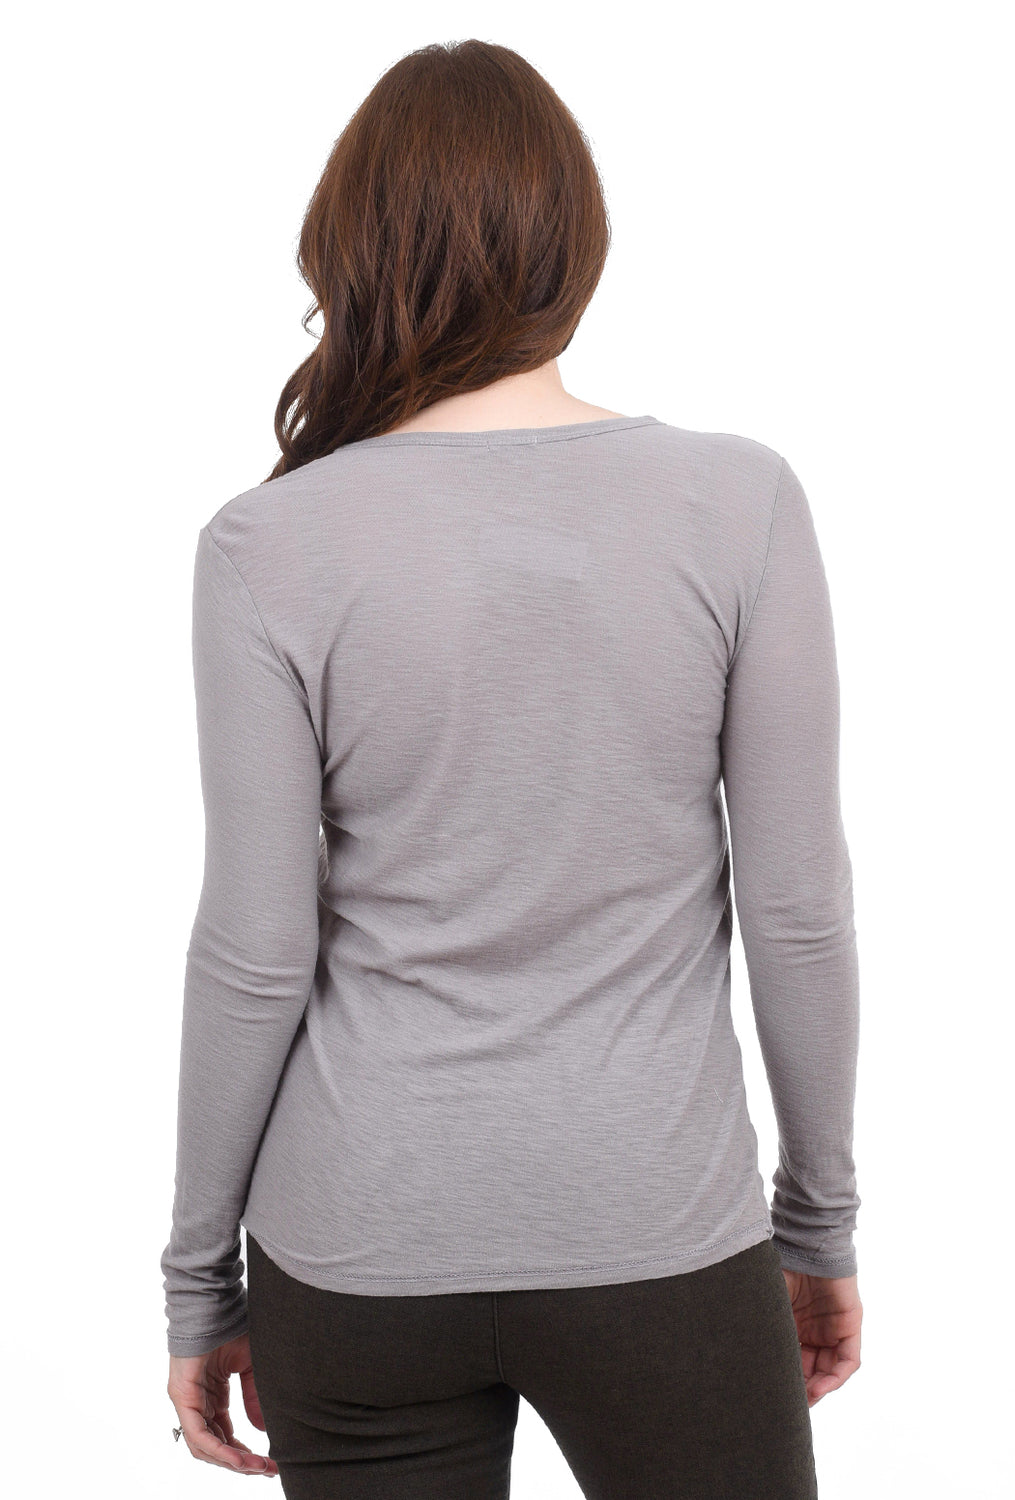 Commune Malibu Crewneck Tee, Light Gray